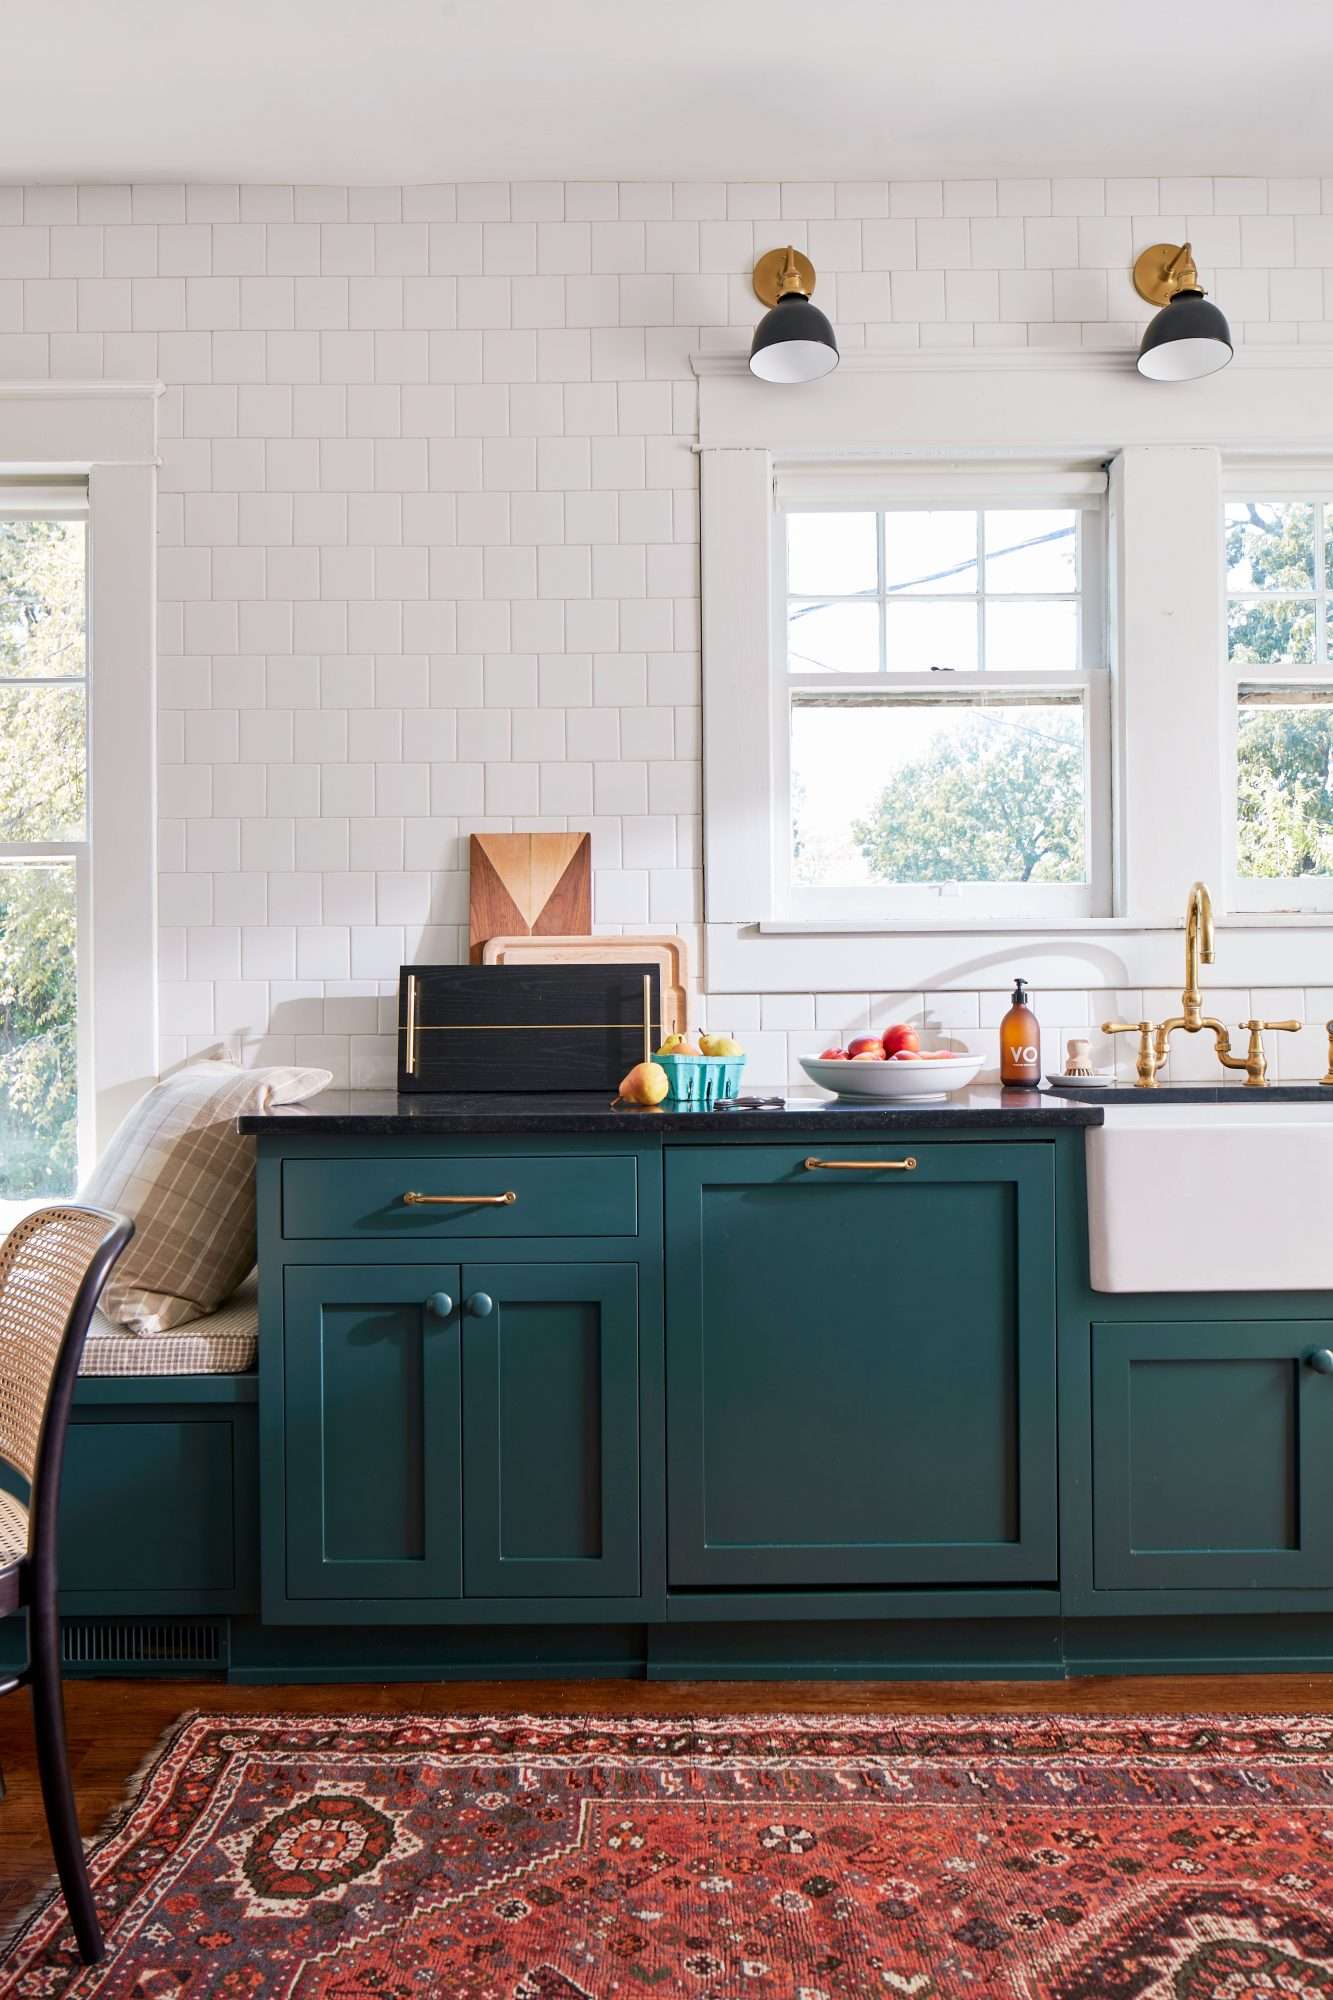 Ellen Godfrey's Birmingham Bungalow Kitchen with Teal Green Cabinets